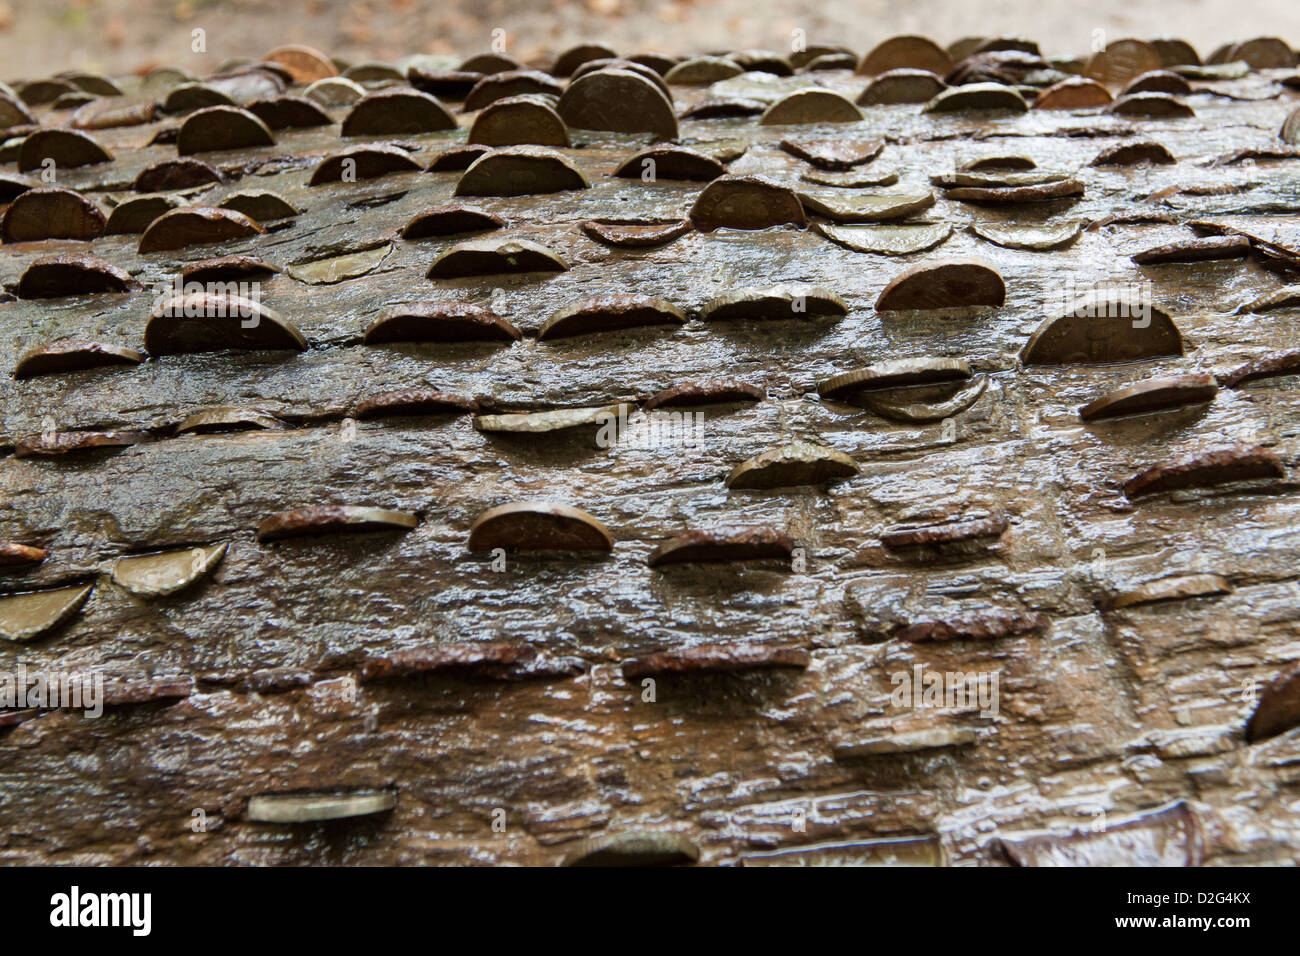 Money tree, copper coins embedded in a tree in woodland for good luck, Exmoor National Park, Somerset, England, - Stock Image